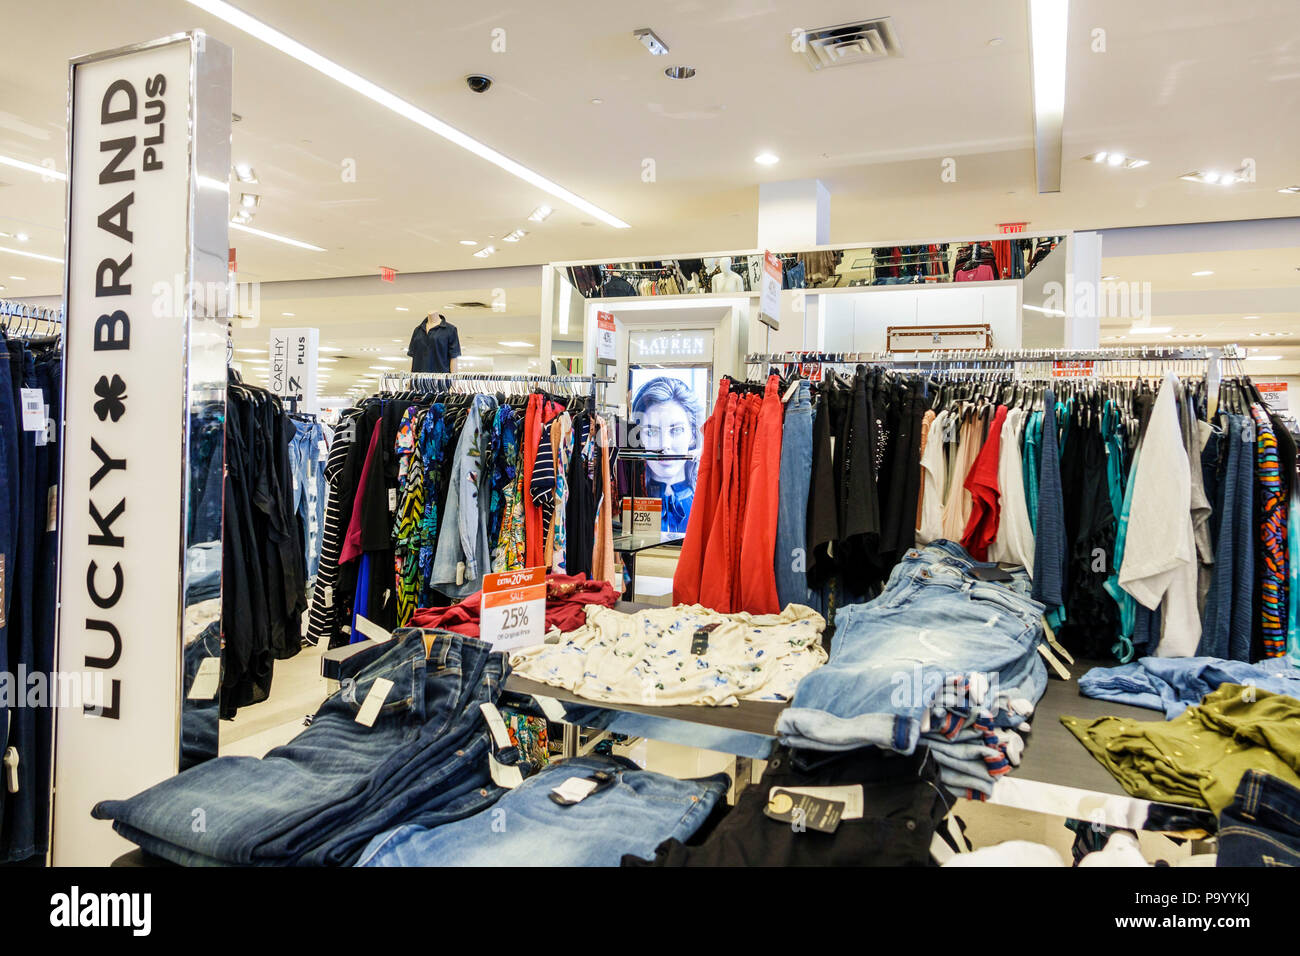 7fe5b9f15c Orlando Florida The Mall at Millenia shopping Macy's department store  women's clothing designer Lucky Brand plus